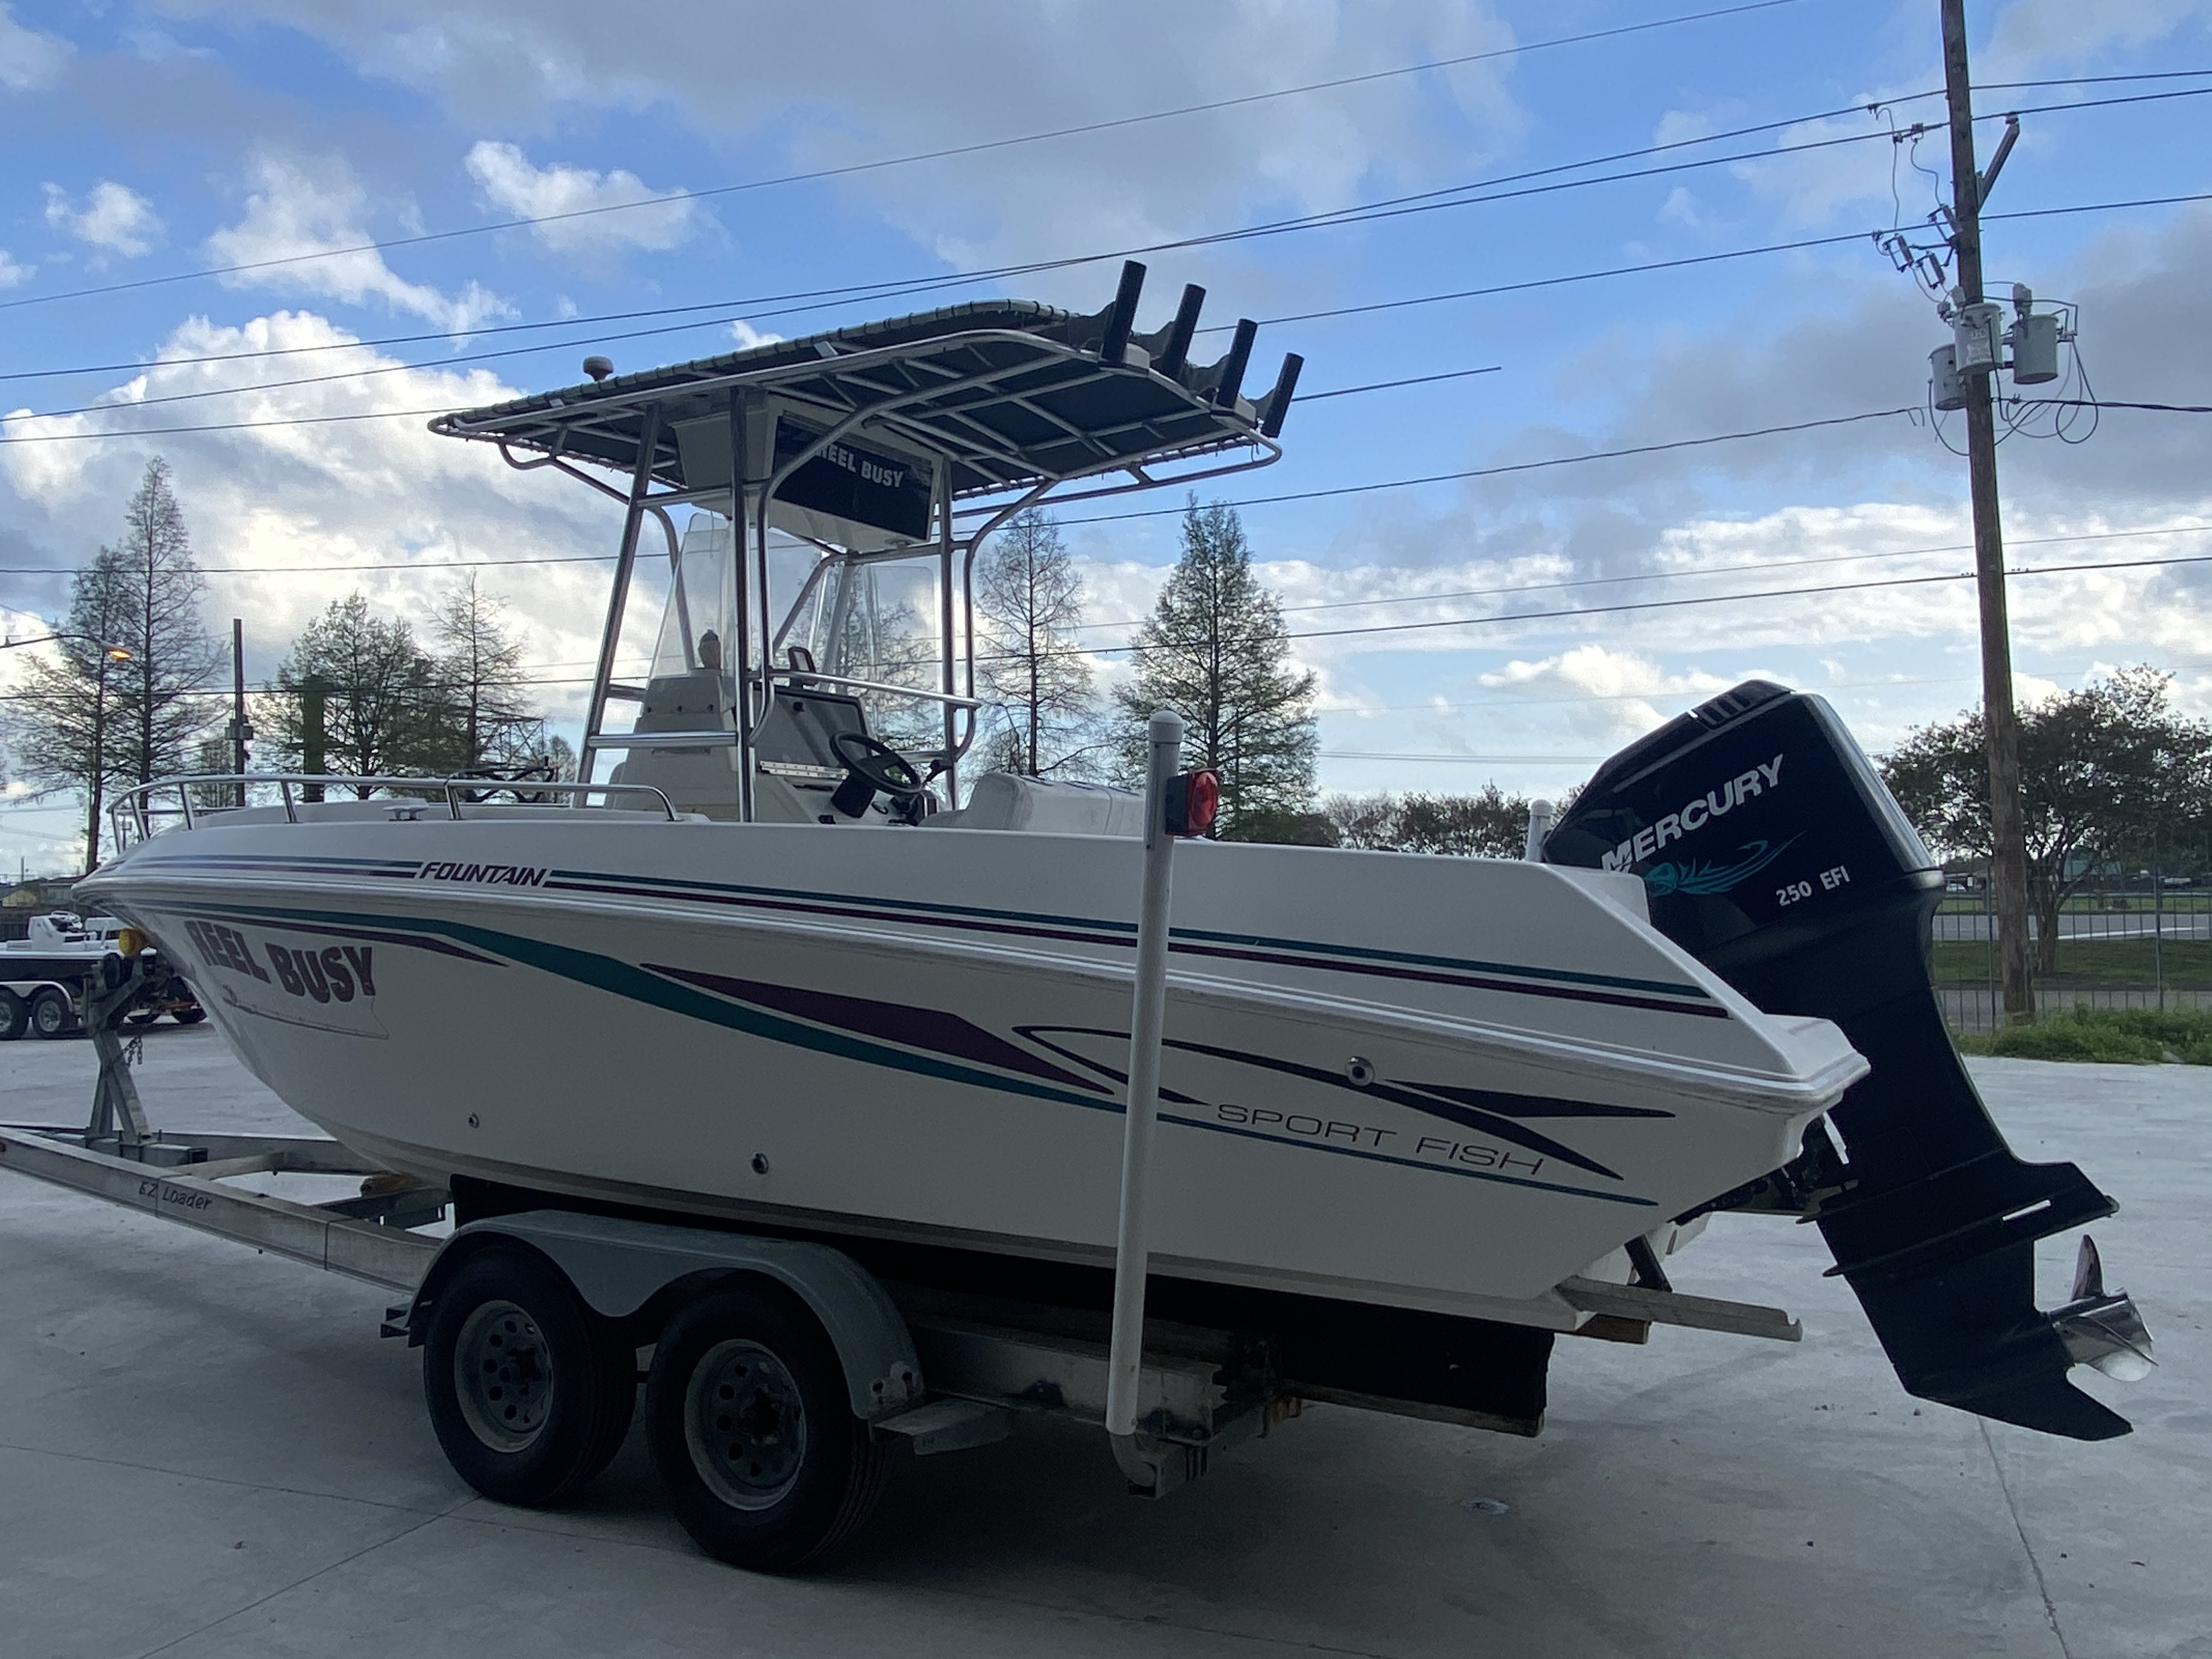 1998 Fountain boat for sale, model of the boat is 25 ft & Image # 4 of 7